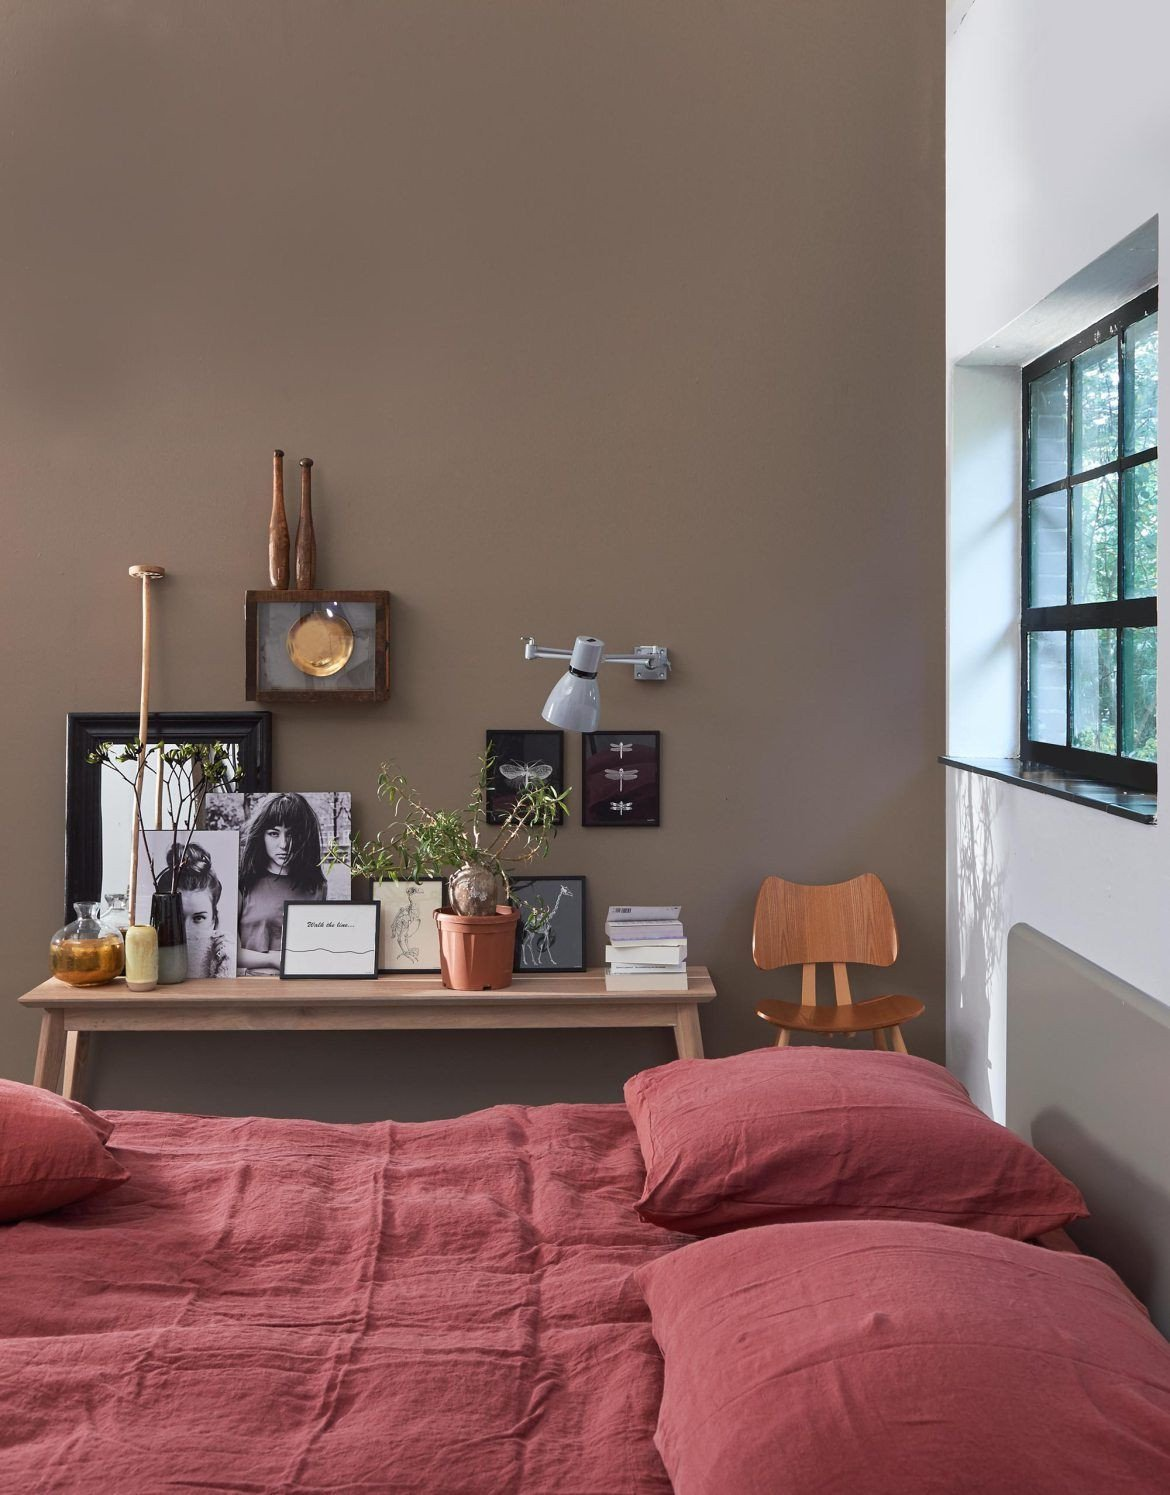 Green and Brown Bedroom Beautiful 10 Tips for Creative Gallery Walls